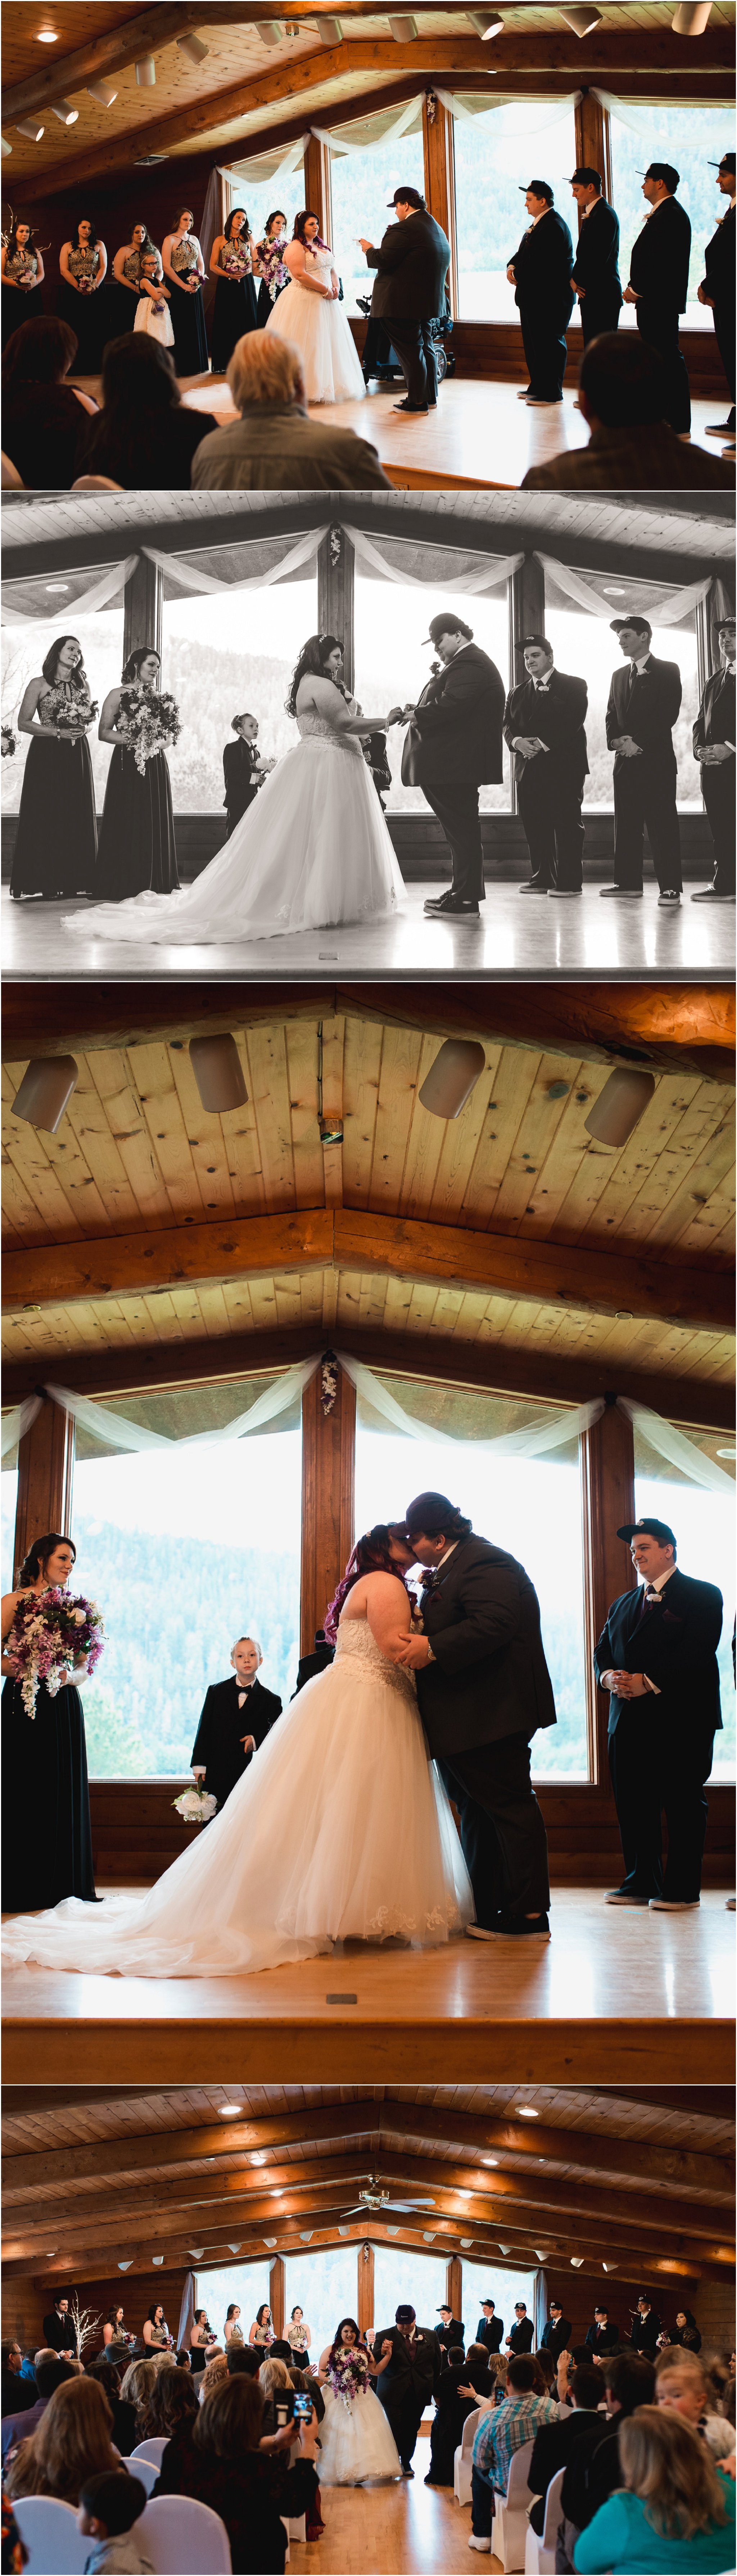 Vicari_Wedding-280_WEB.jpg